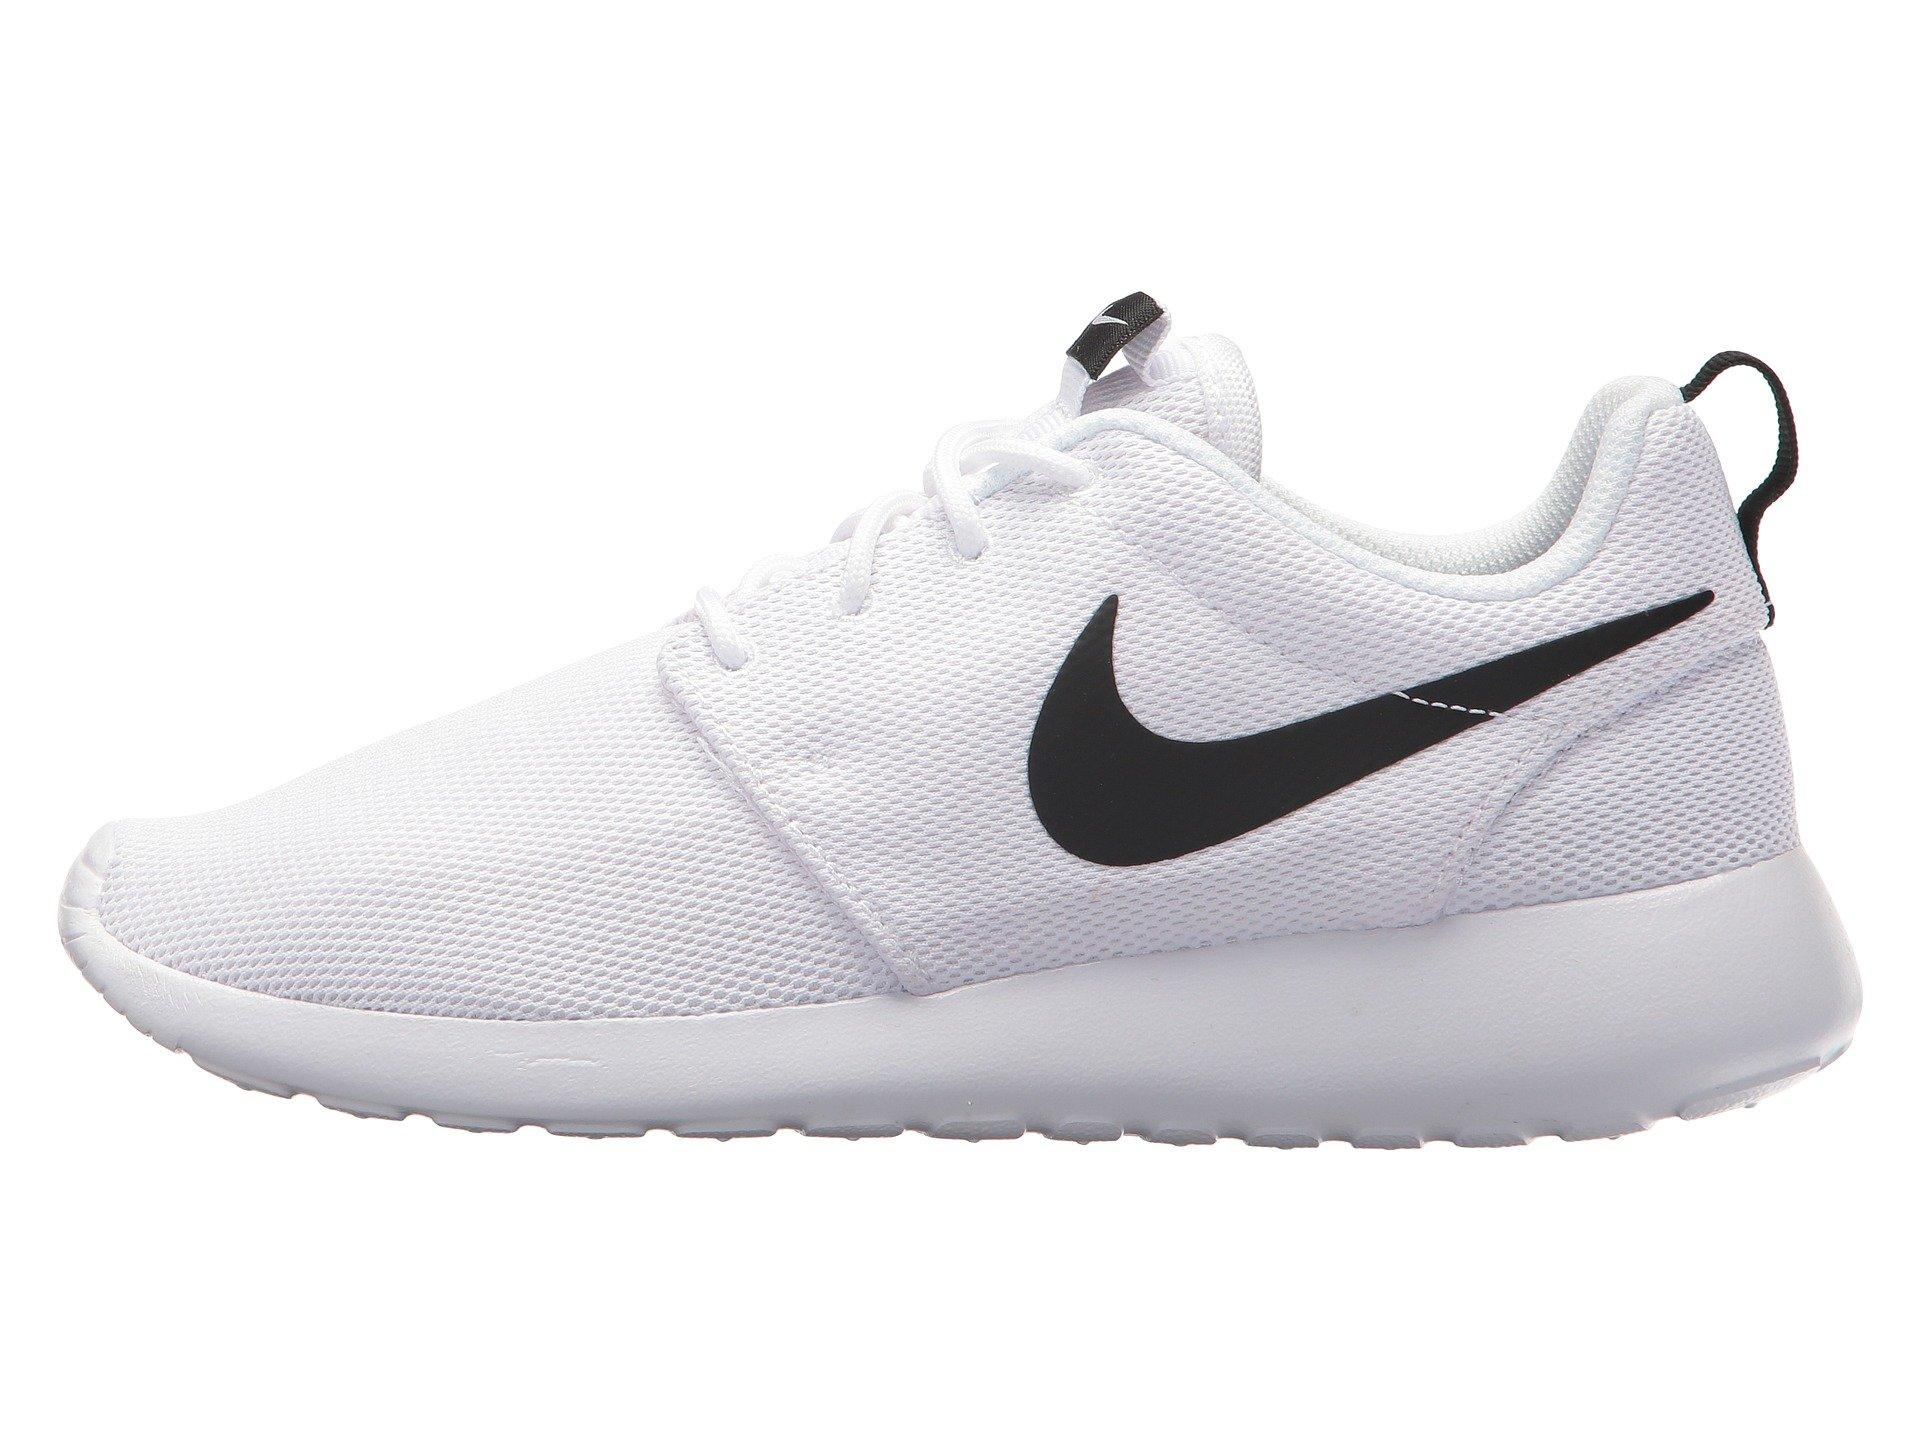 aa77a4e45c22 Lyst - Nike Roshe One Shoe in White - Save 8%